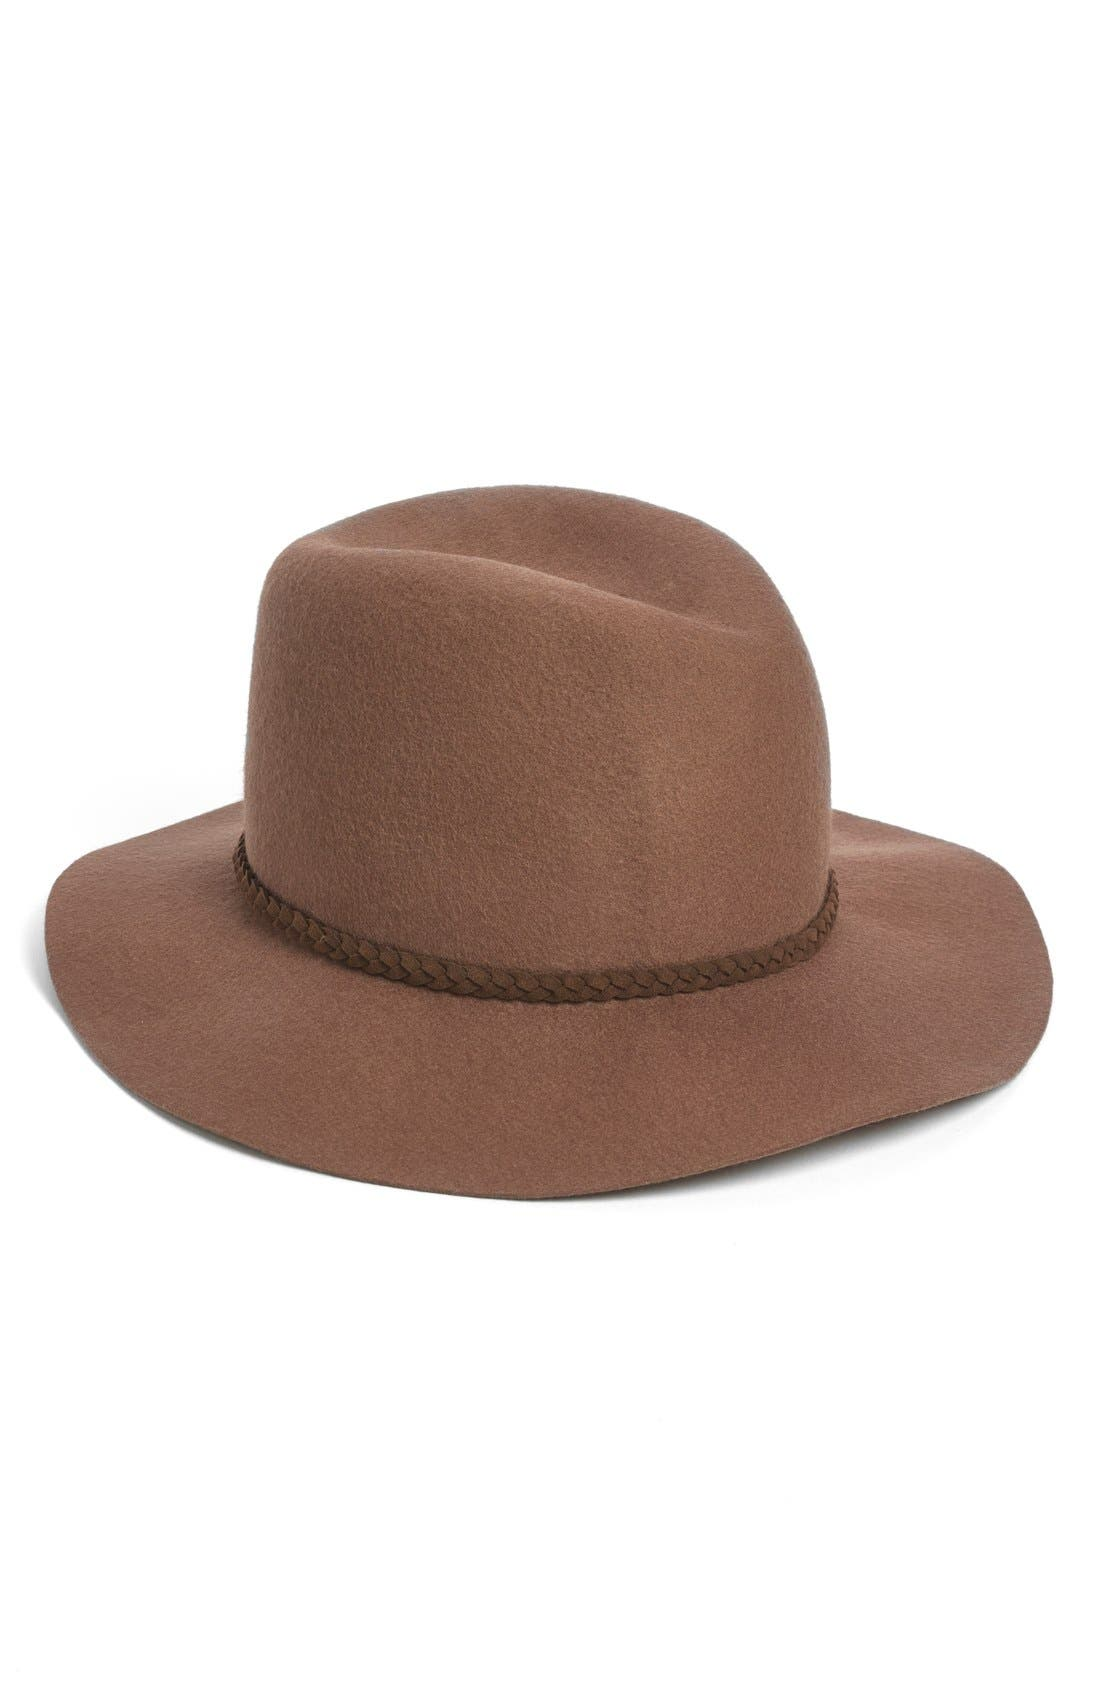 Felt Panama Hat,                             Main thumbnail 1, color,                             Walnut